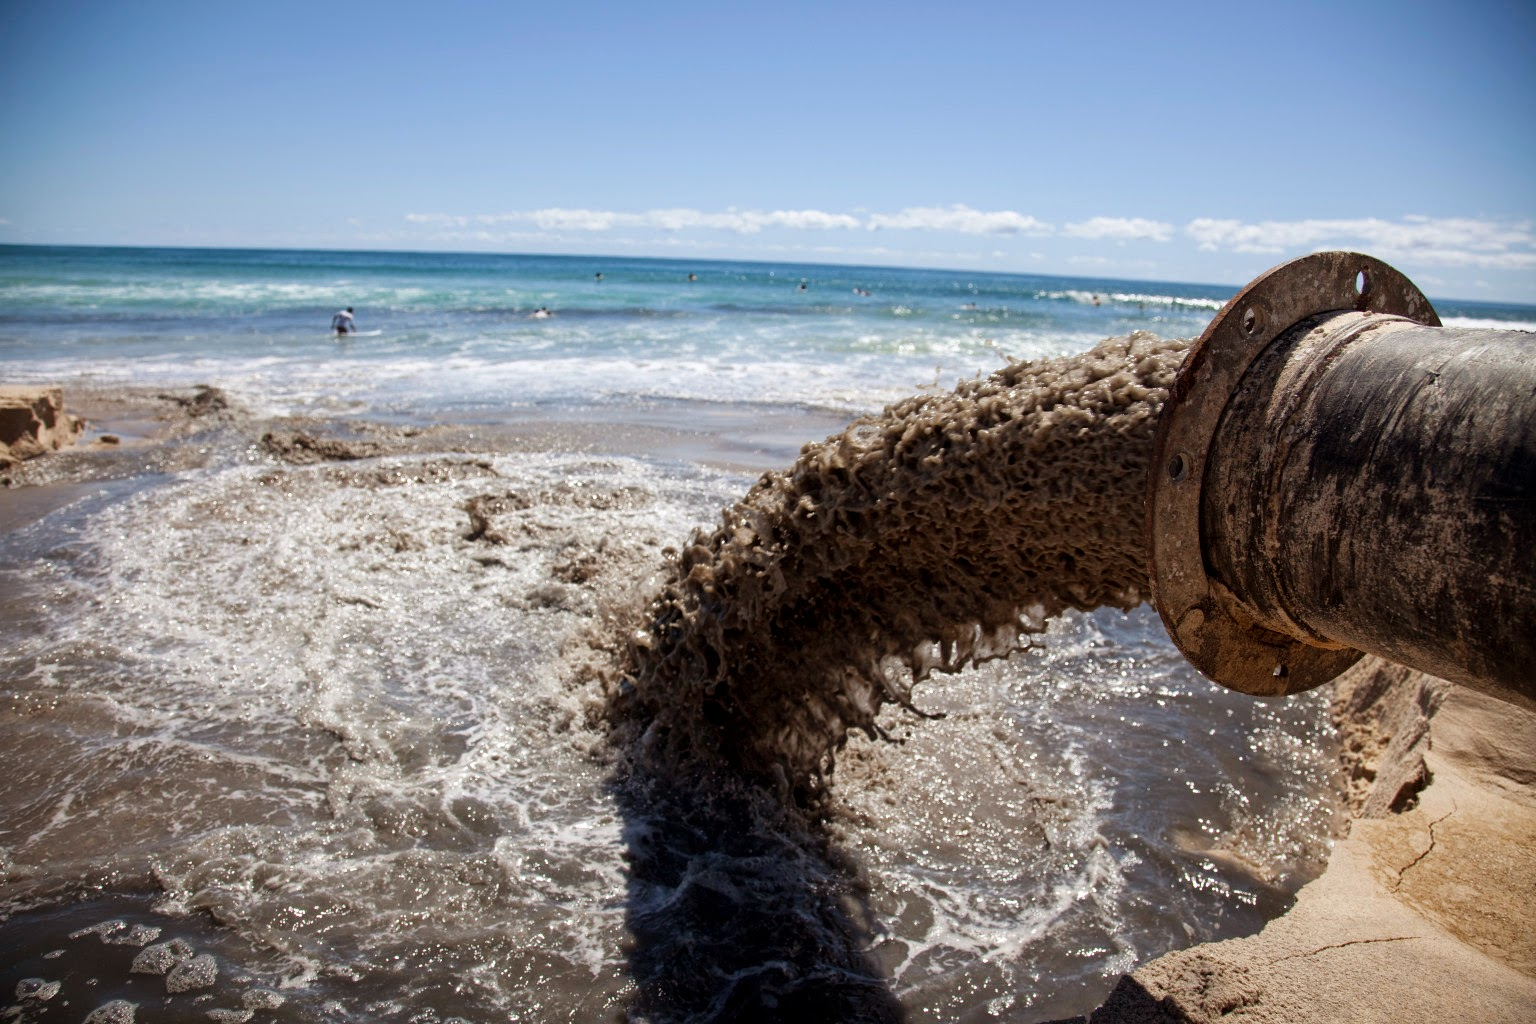 Billions of gallons of waste is being dumped into the gulf for We are water